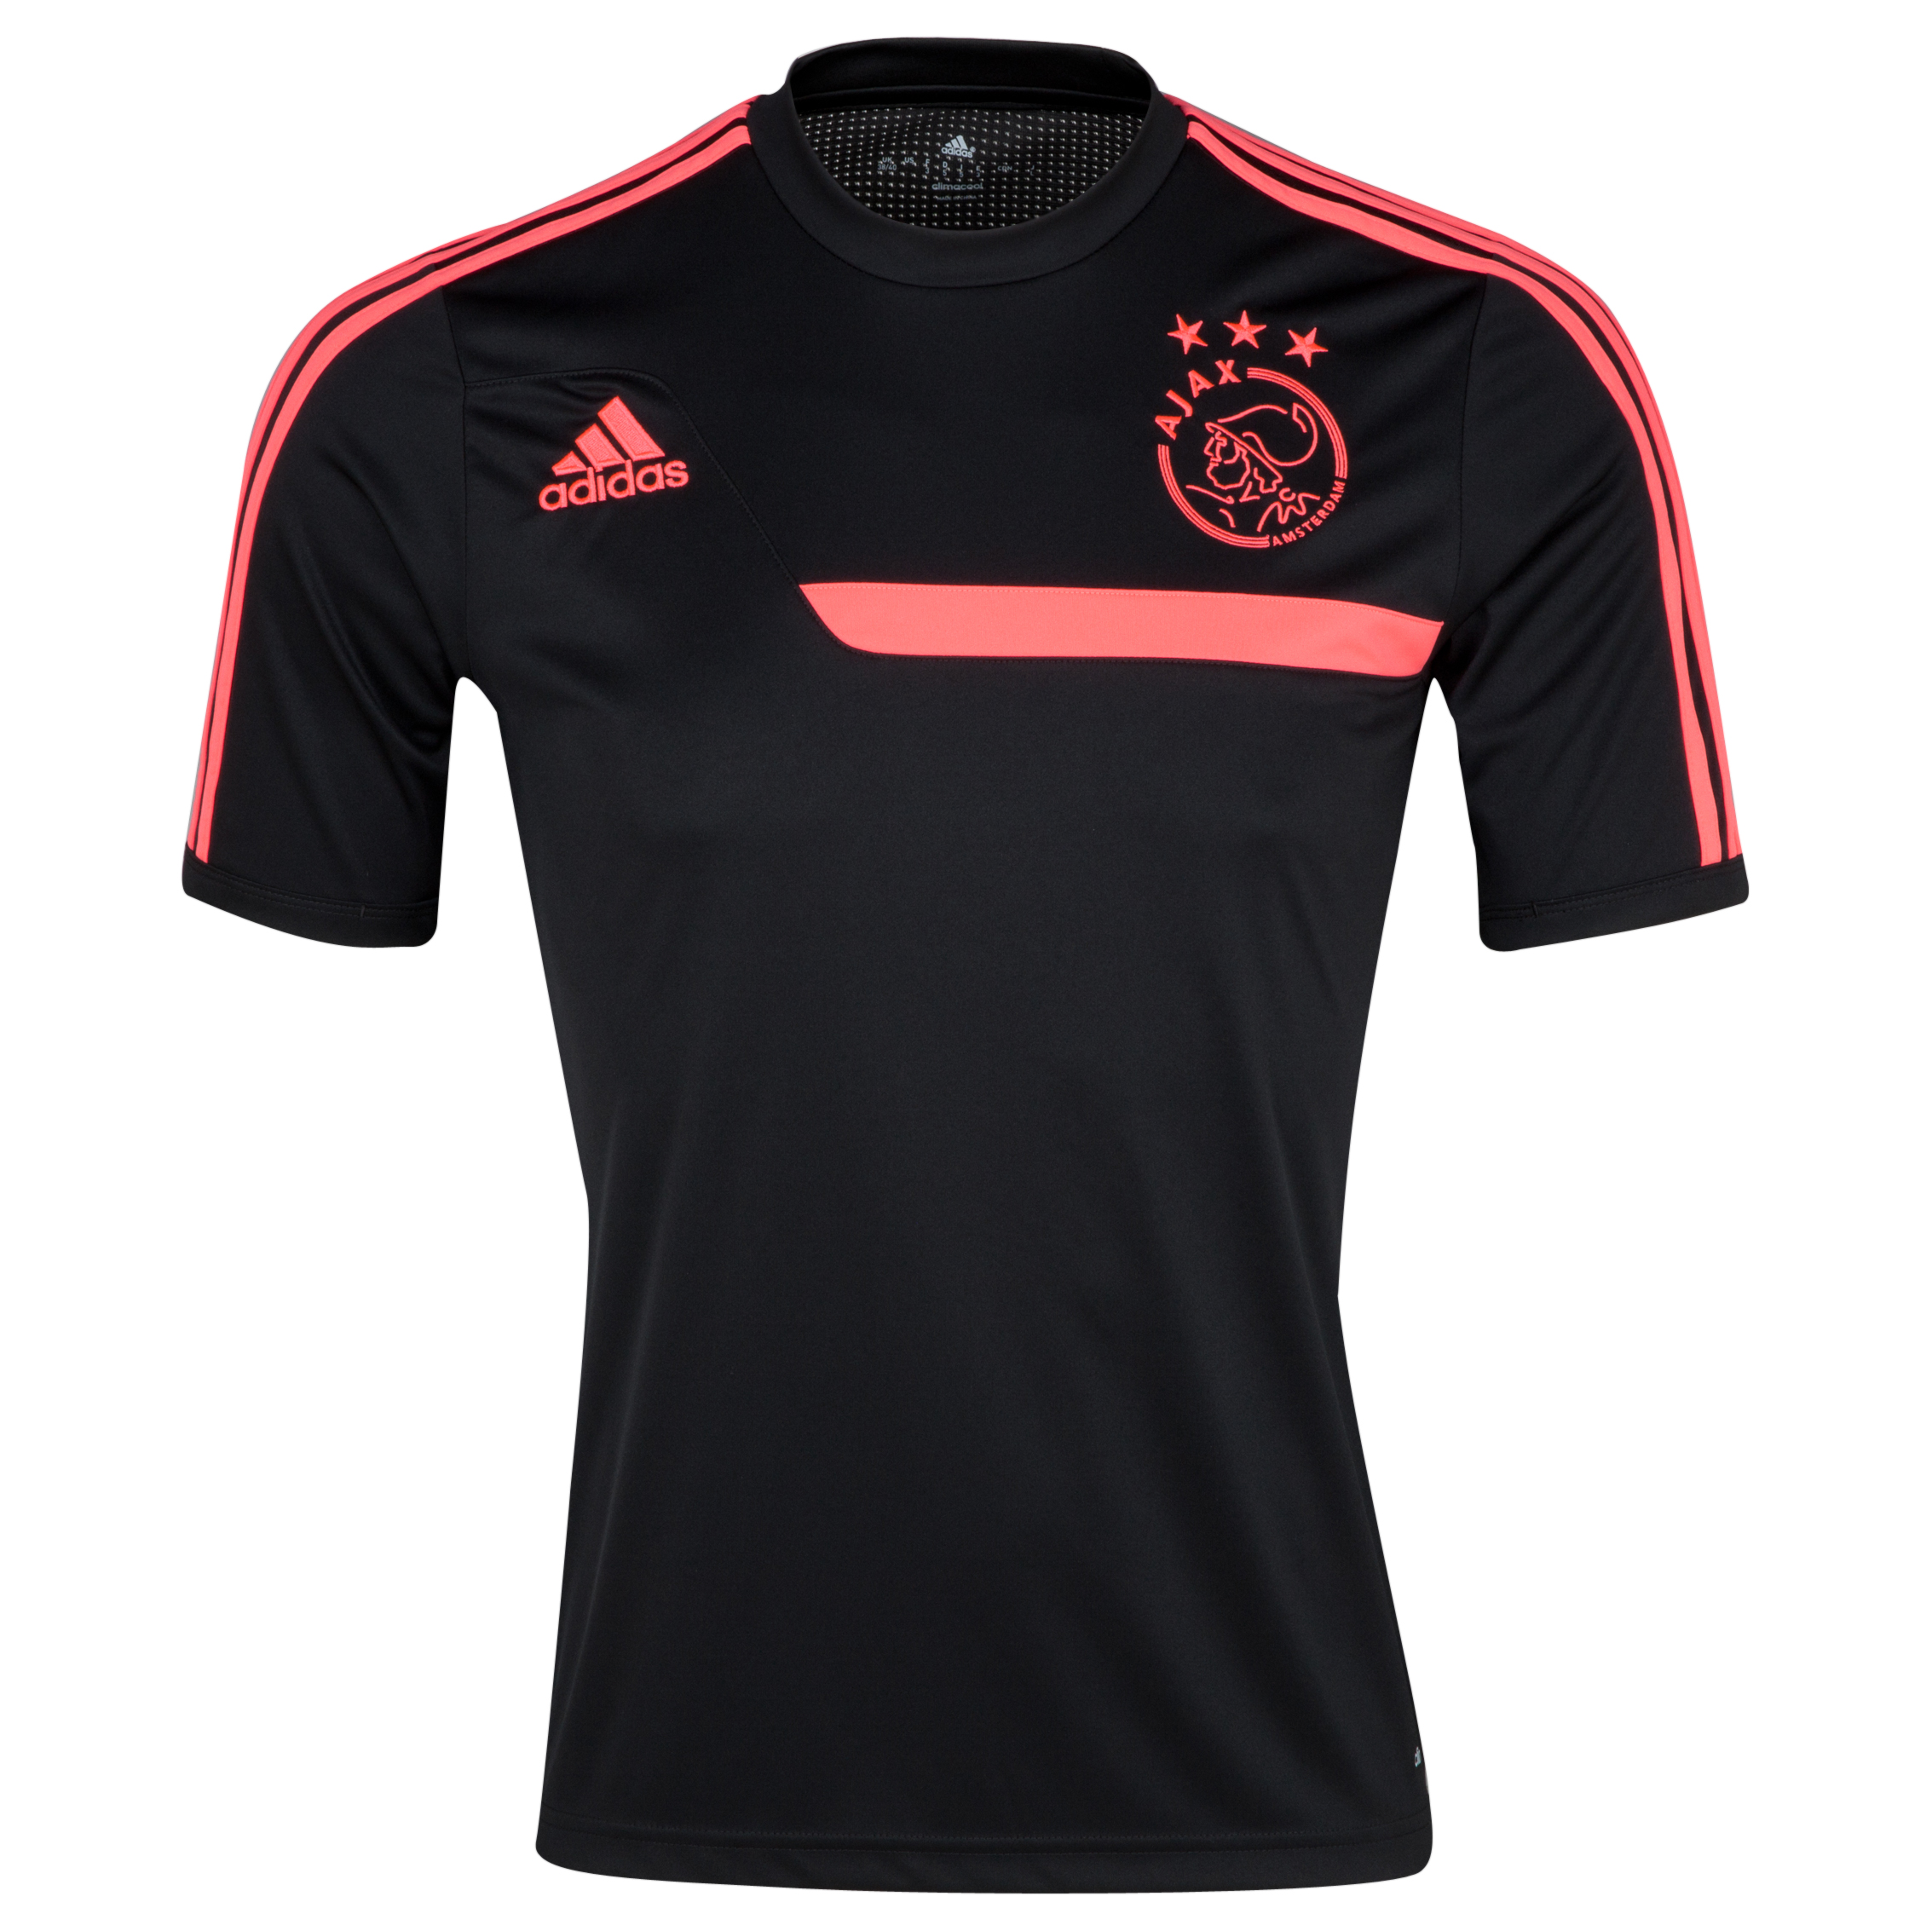 Ajax Training Jersey - Black/Red Zest